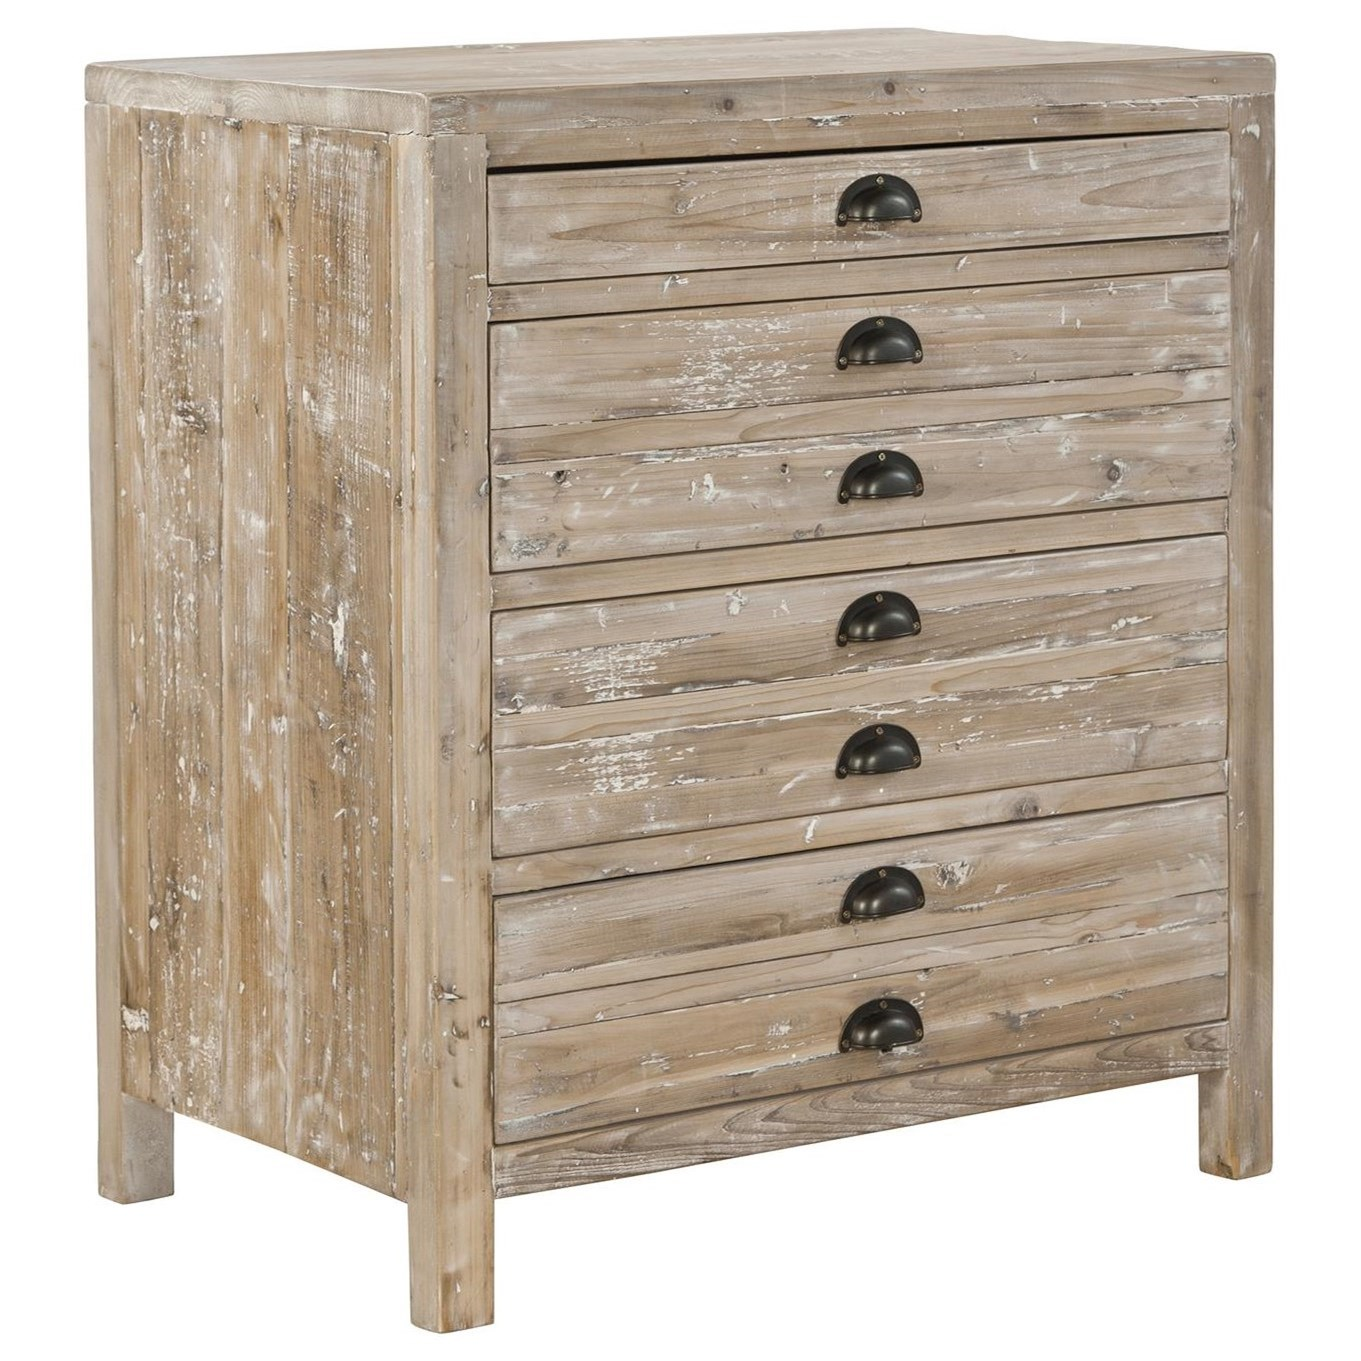 Accents Small Apothecary Chest by Furniture Classics at Alison Craig Home Furnishings